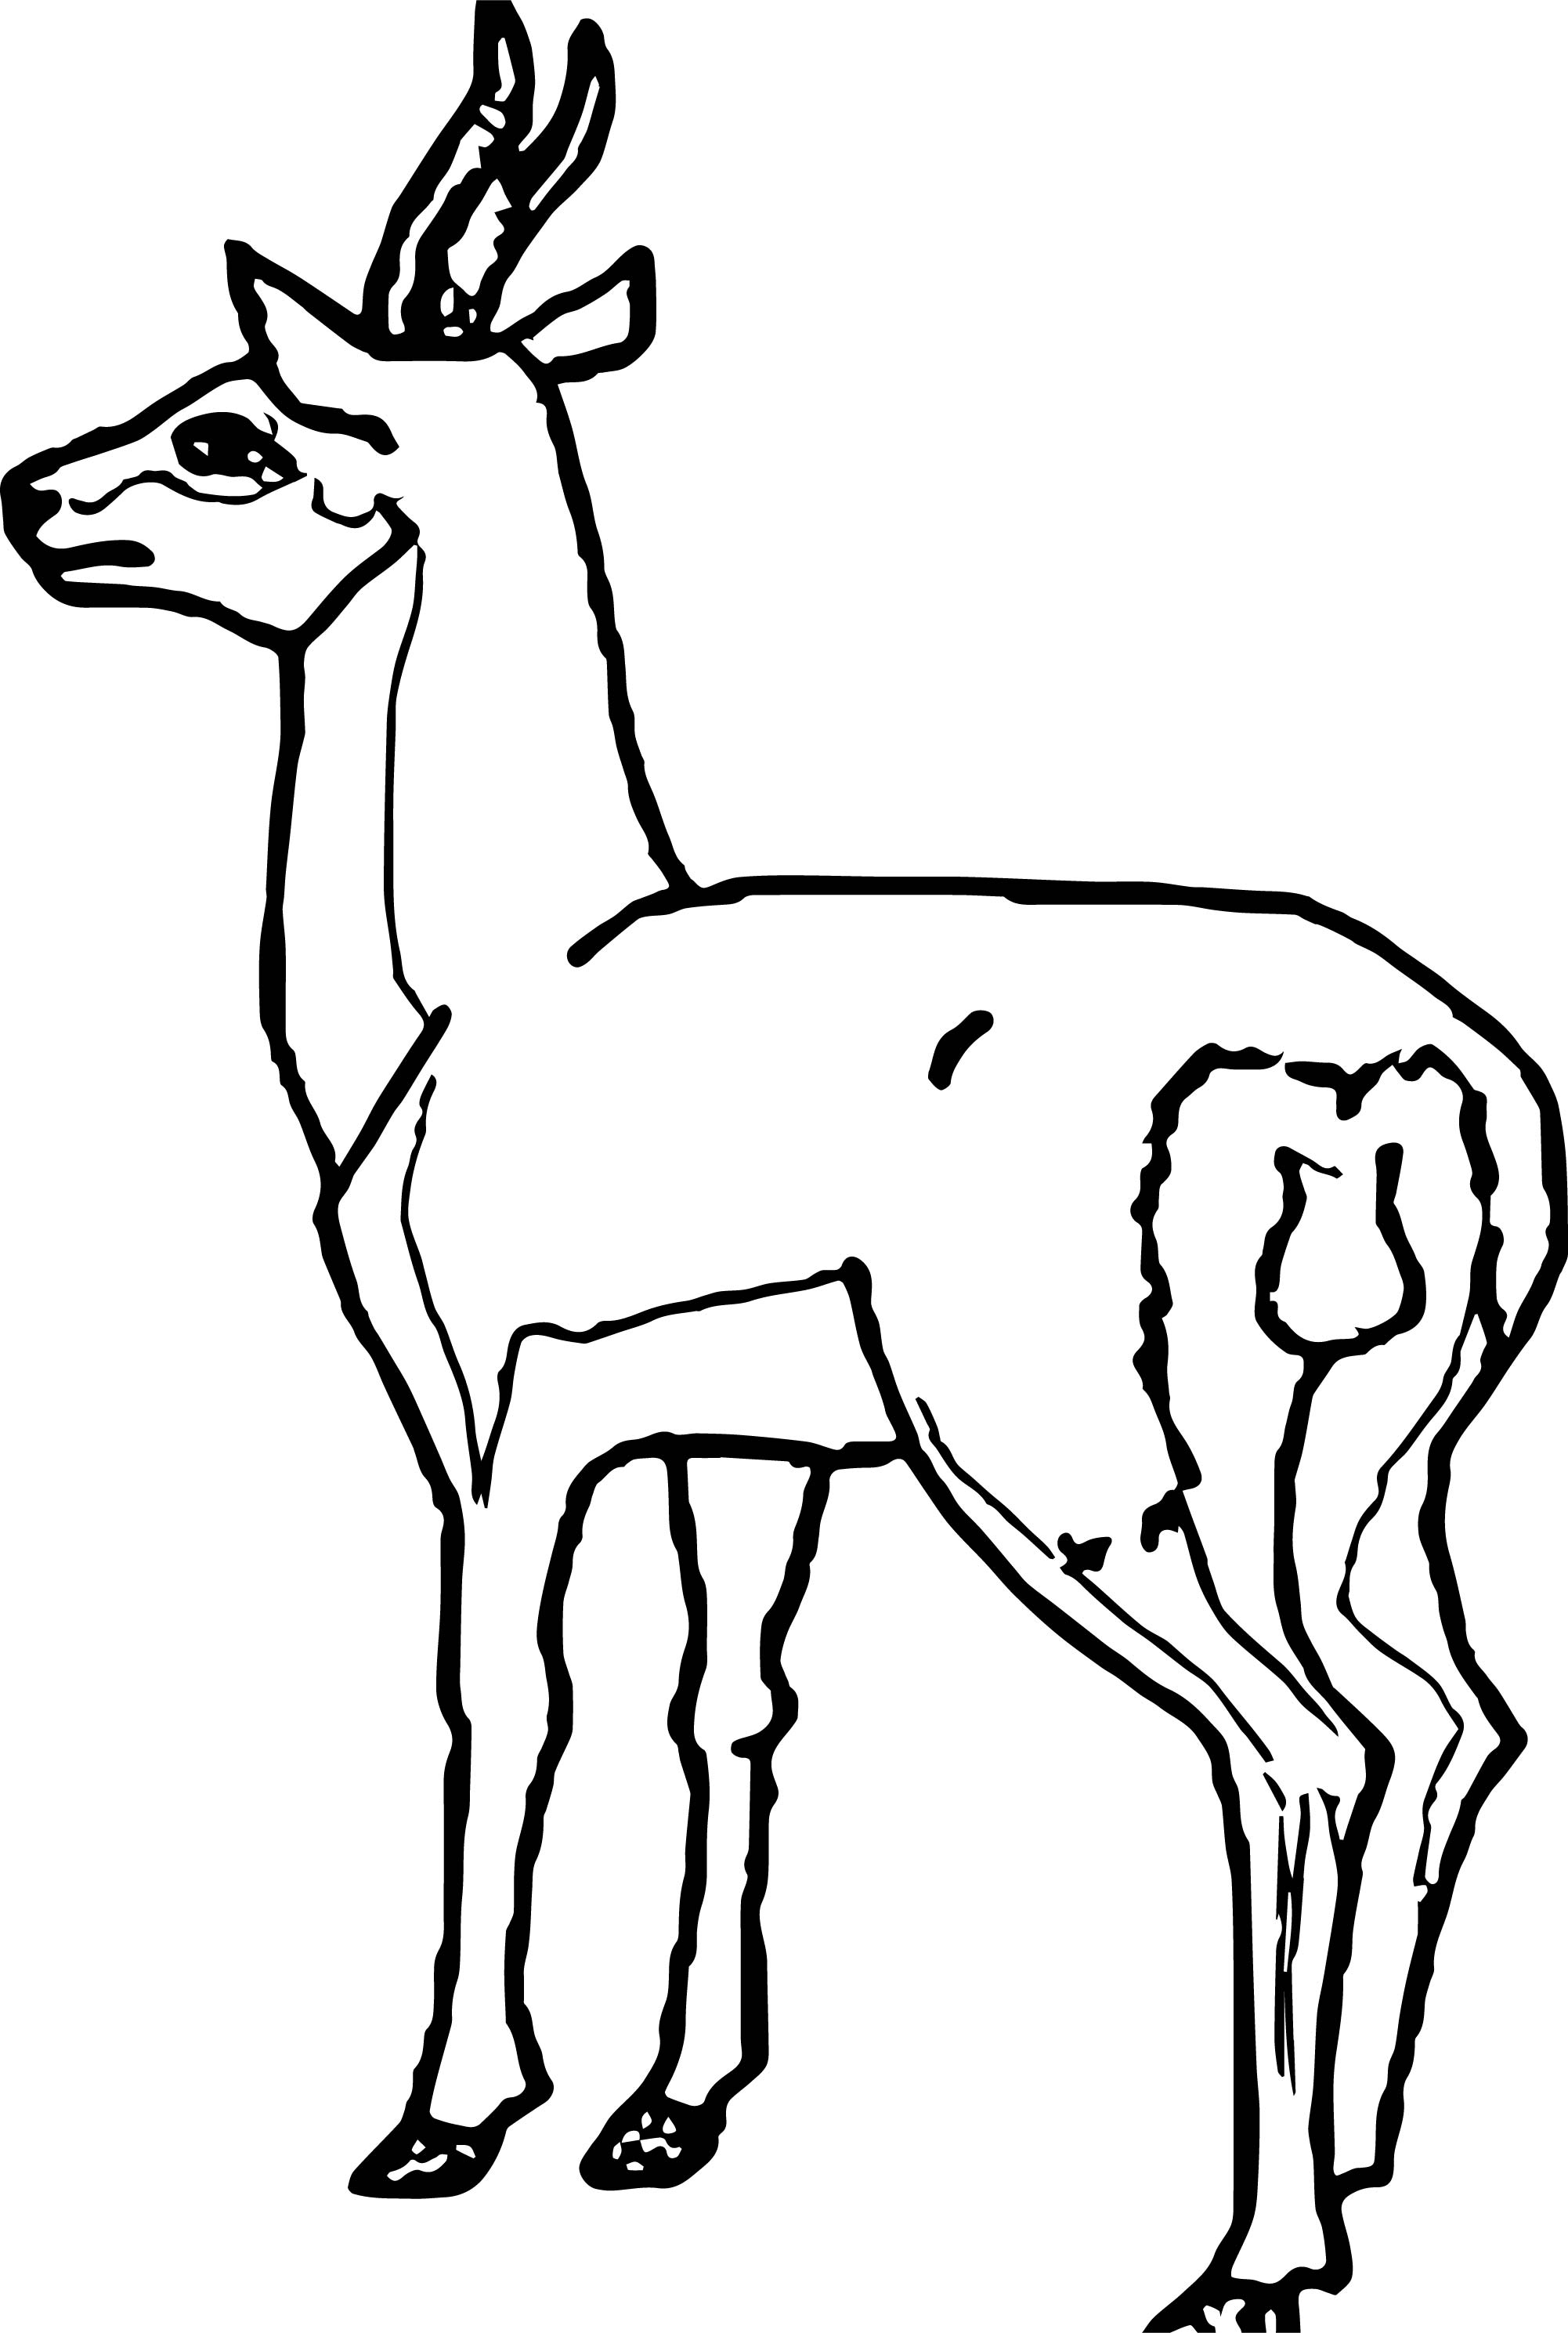 Antelope Back View Coloring Page